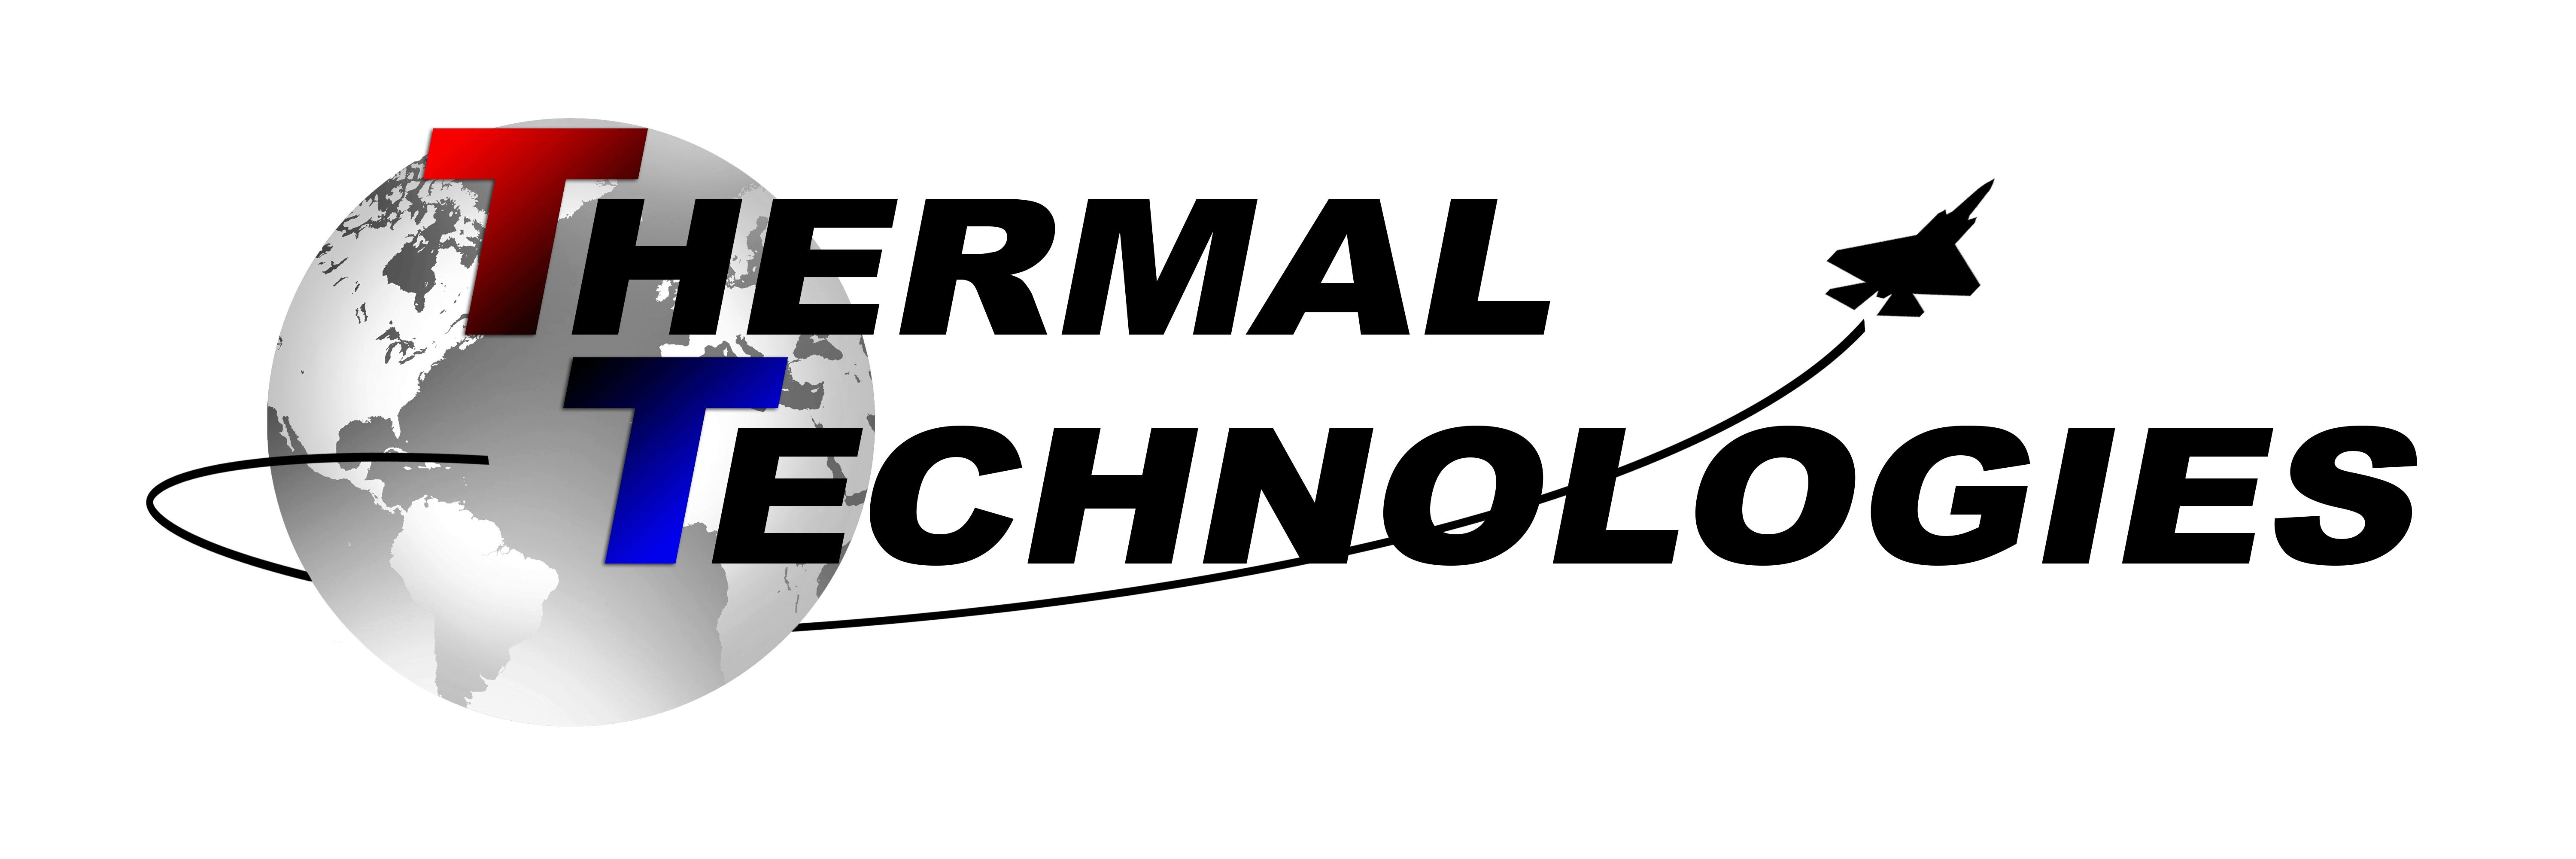 Made-in-California-manufacturer-Thermal-Technologies-Logo.jpg